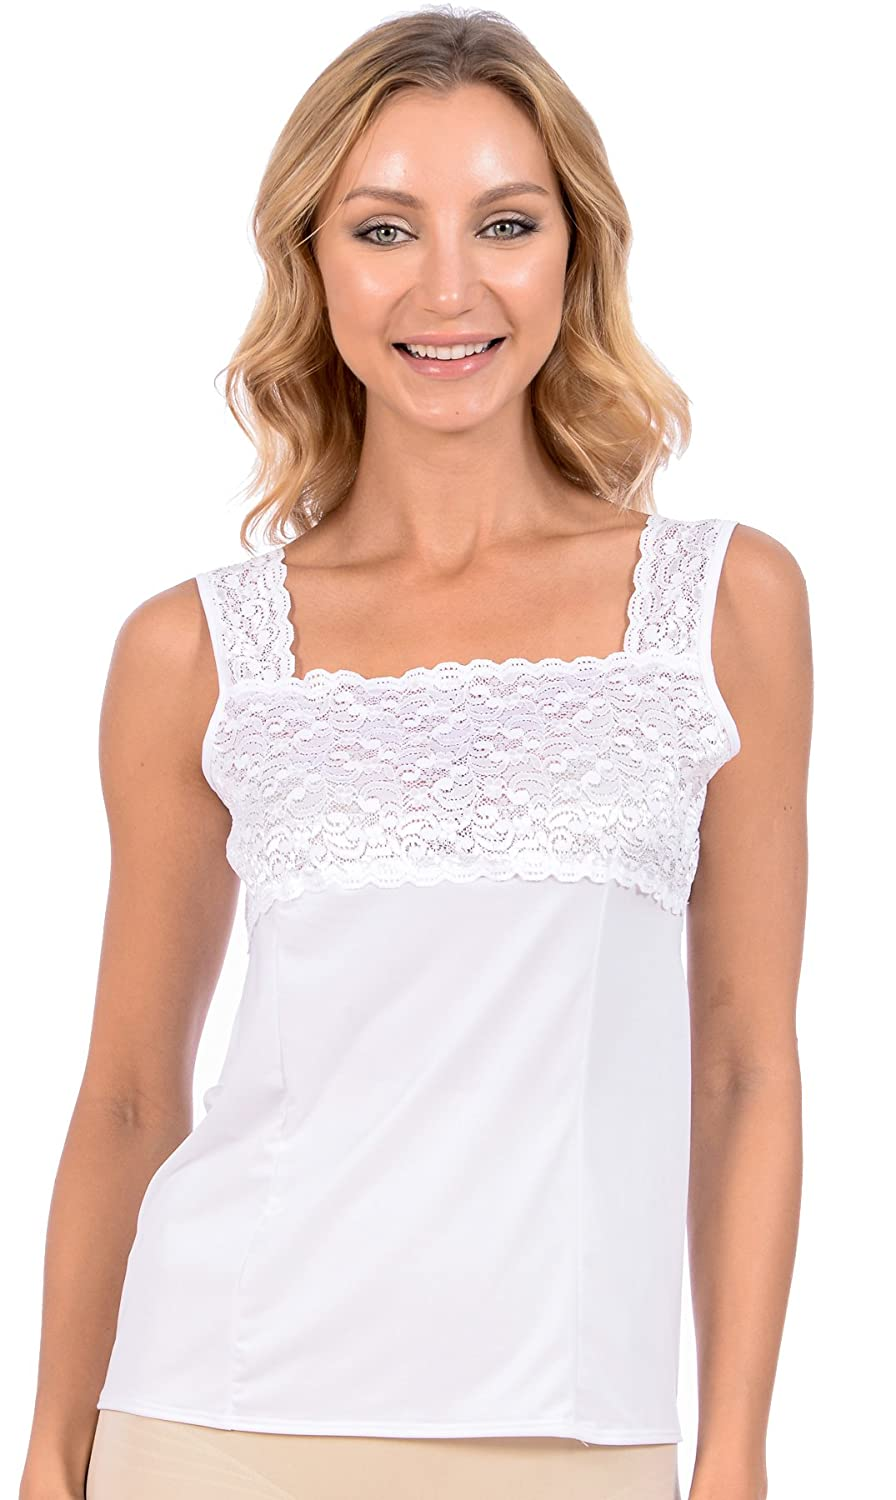 Womens Patricia Lingerie Luminesse Stretch Fabric Lace Detail Square Neck Camisole CKC_PLC_5197